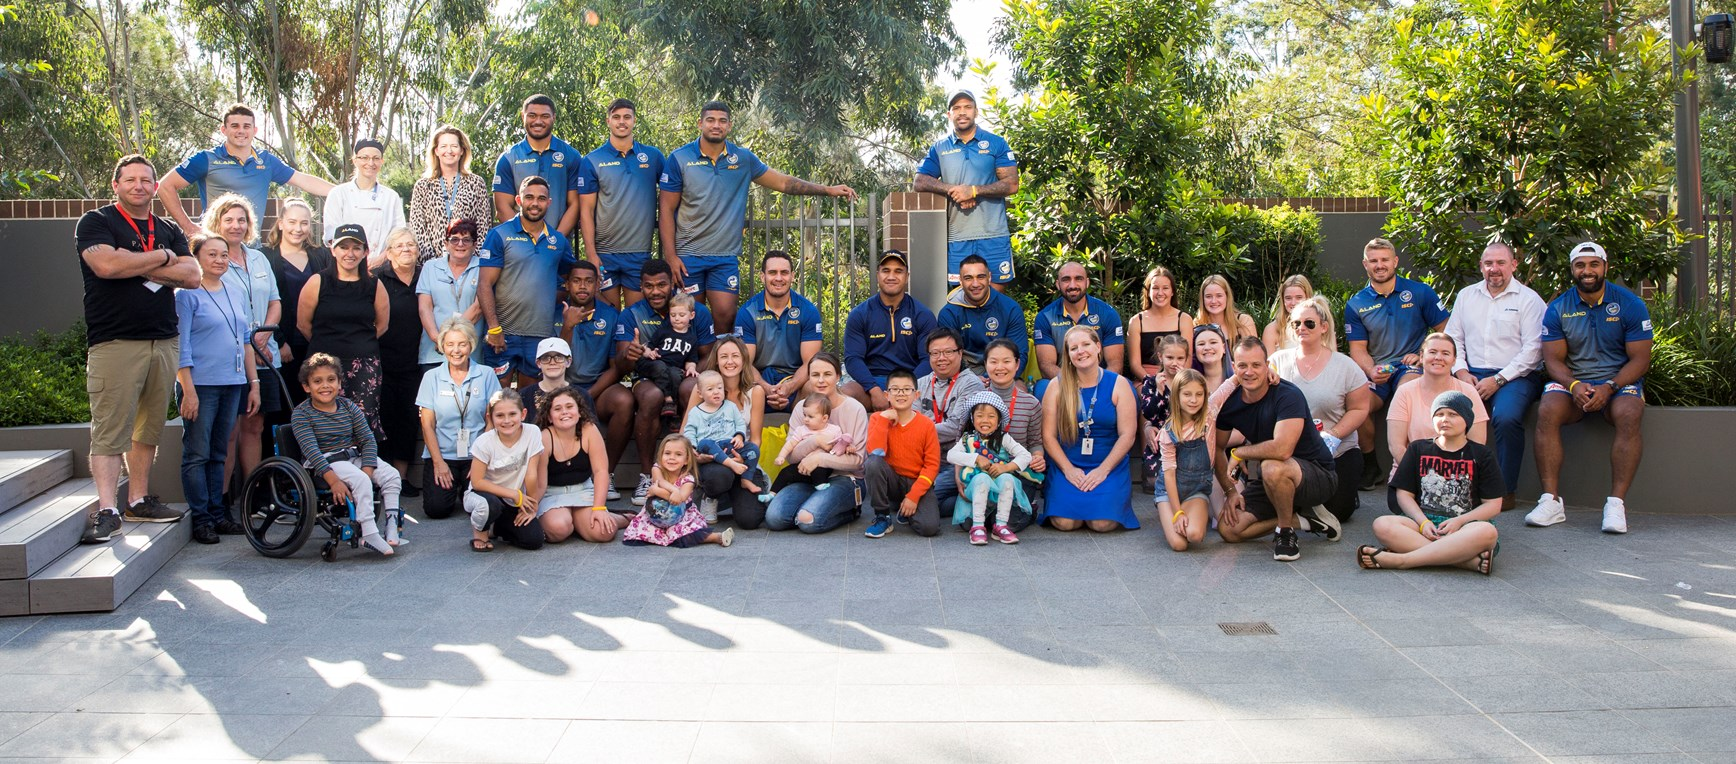 Eels visit RMH & CHW over Easter